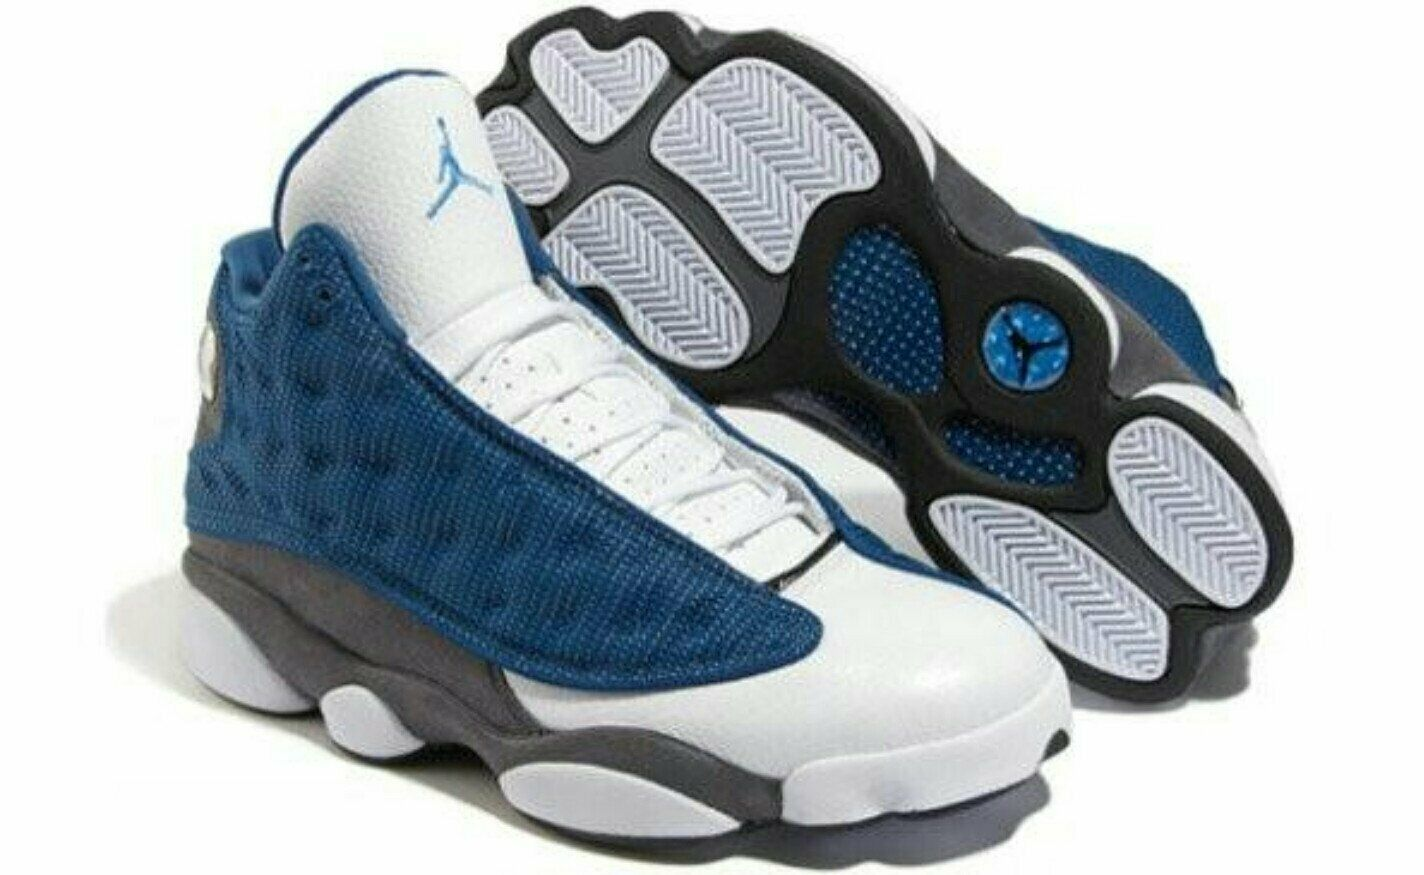 2be62b4b8 AIR JORDAN RETRO 13 FLINT LAST ONE SZ 13 nqnscf8511-Athletic Shoes ...